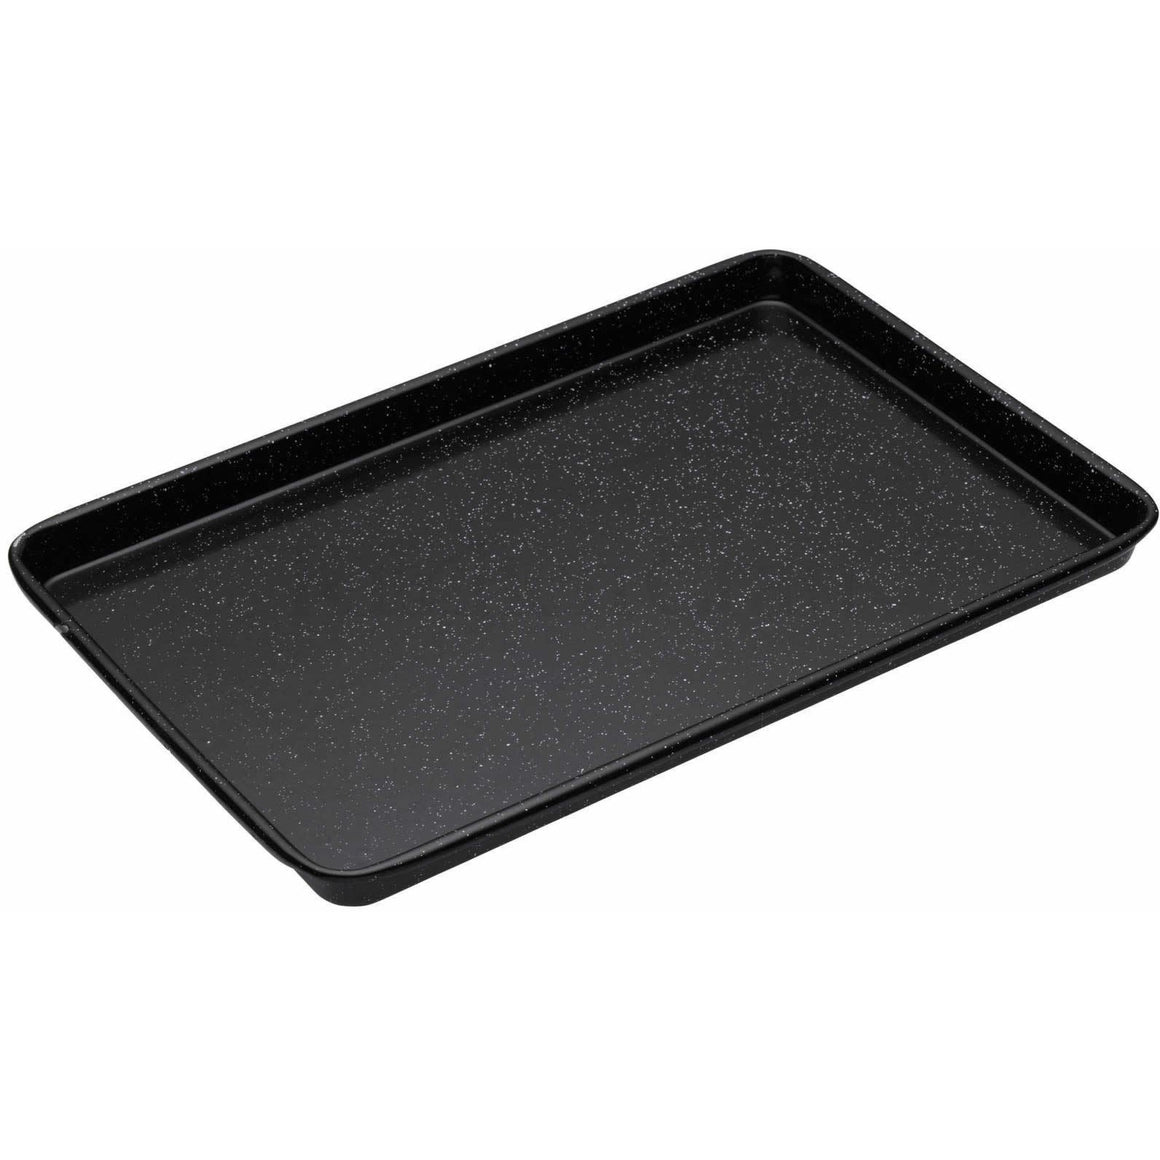 KitchenCraft Large Enamel Tray